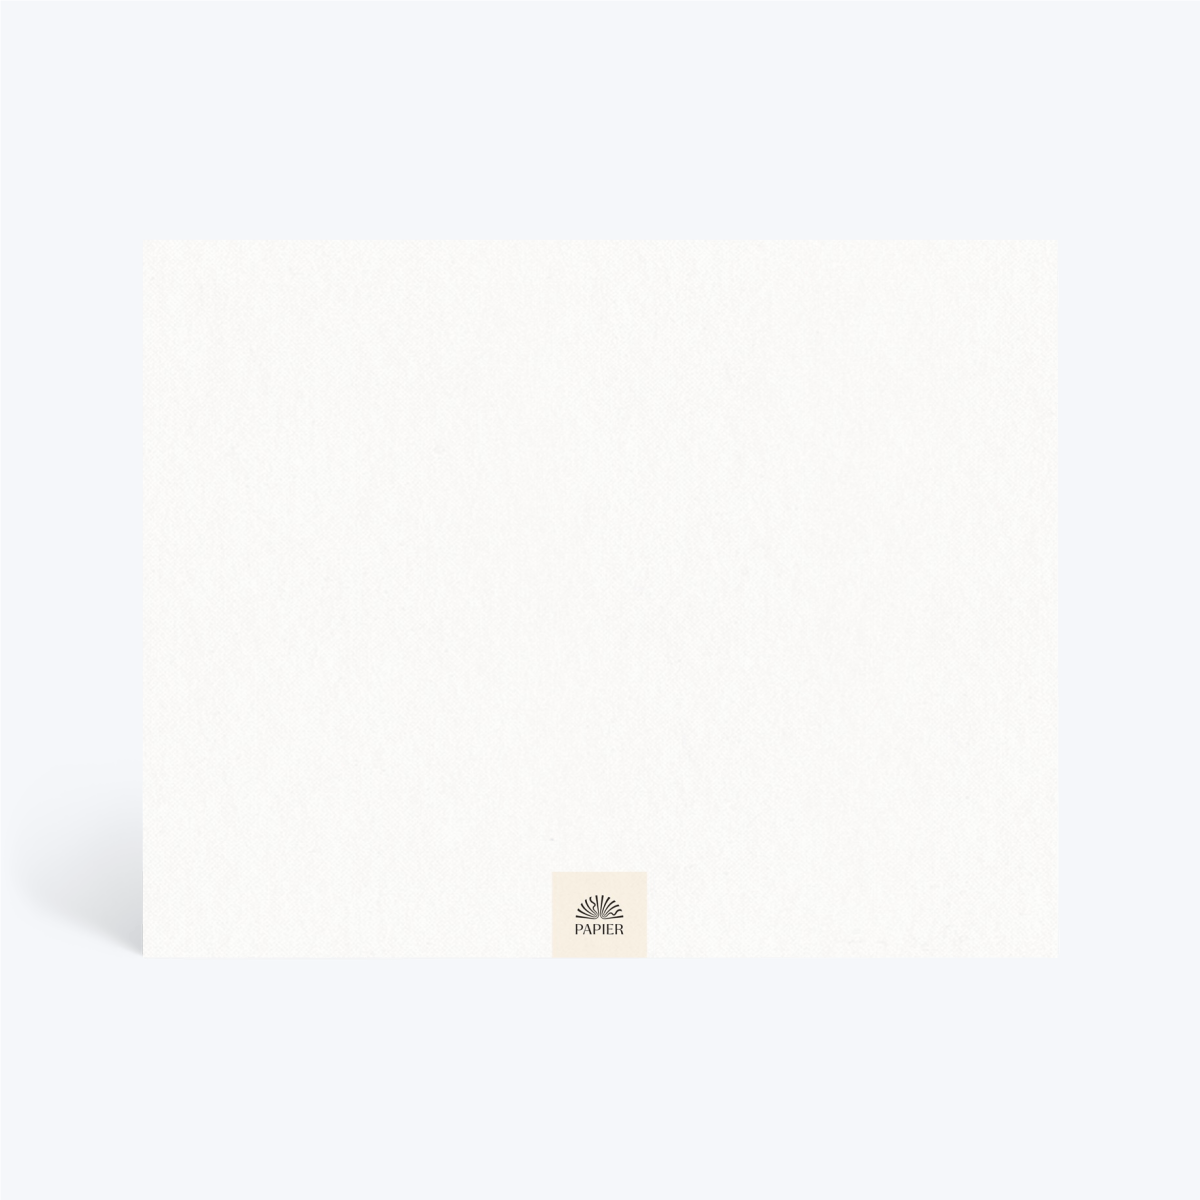 Https%3a%2f%2fwww.papier.com%2fproduct image%2f60377%2f29%2fthe minimalist 14447 arriere 1545923474.png?ixlib=rb 1.1